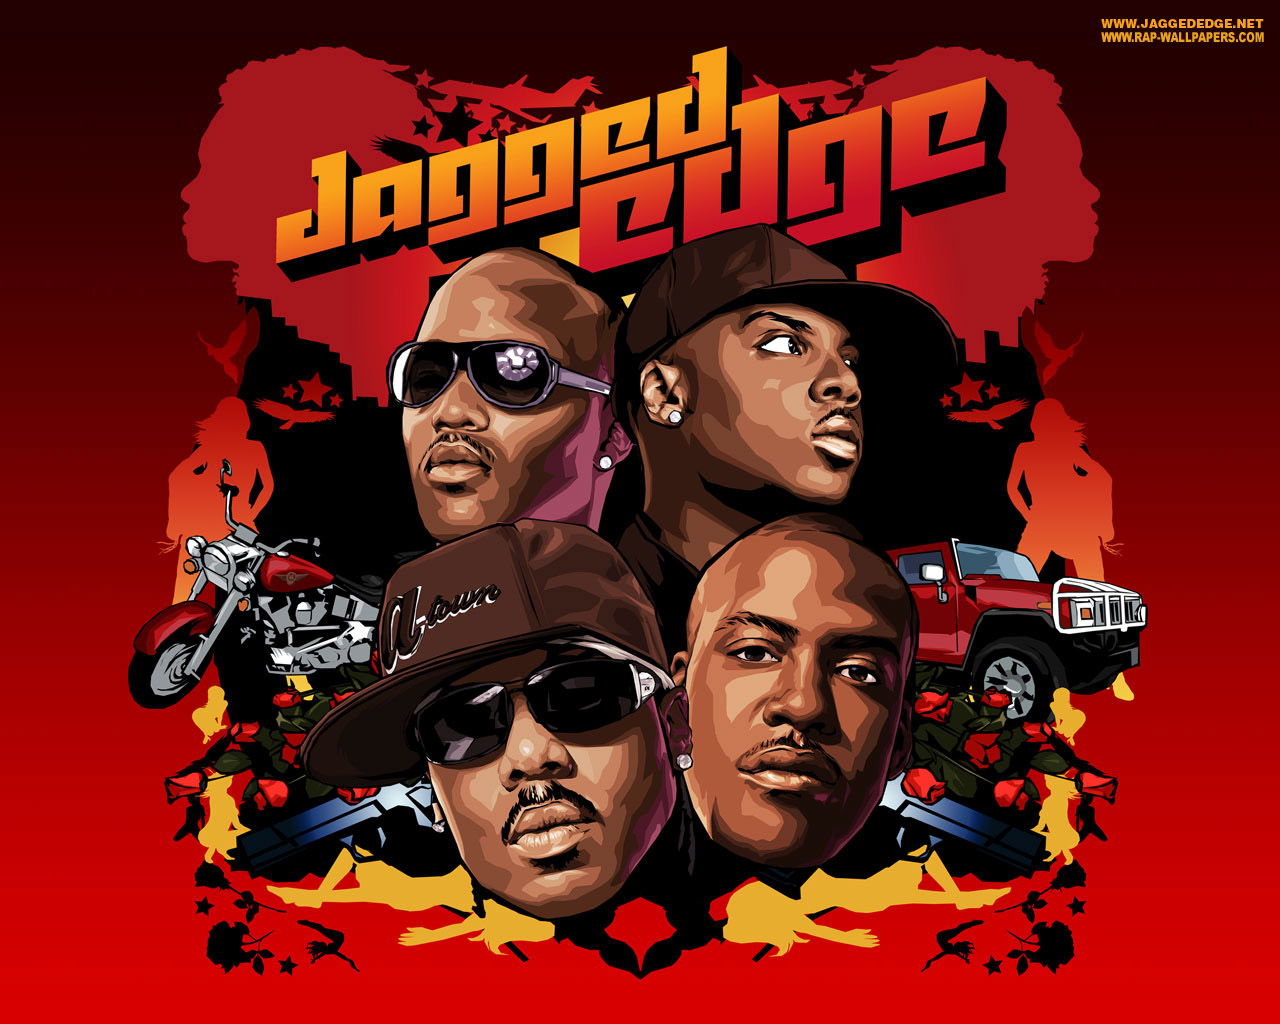 jagged edge wallpapers 01